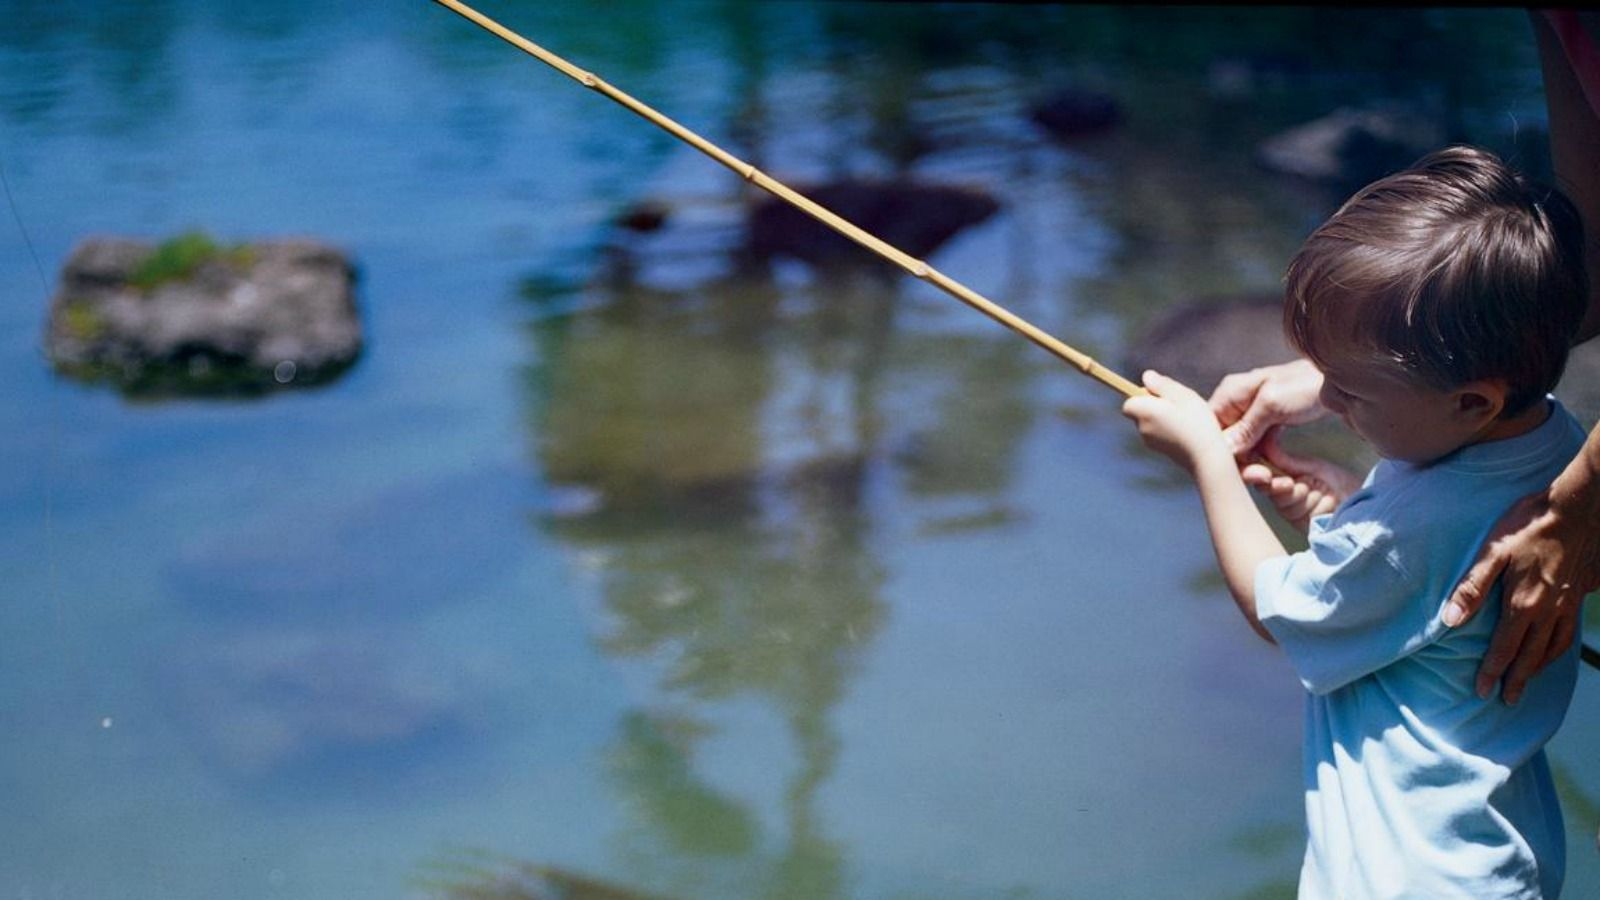 Experience Wildlife - Children's Fishing